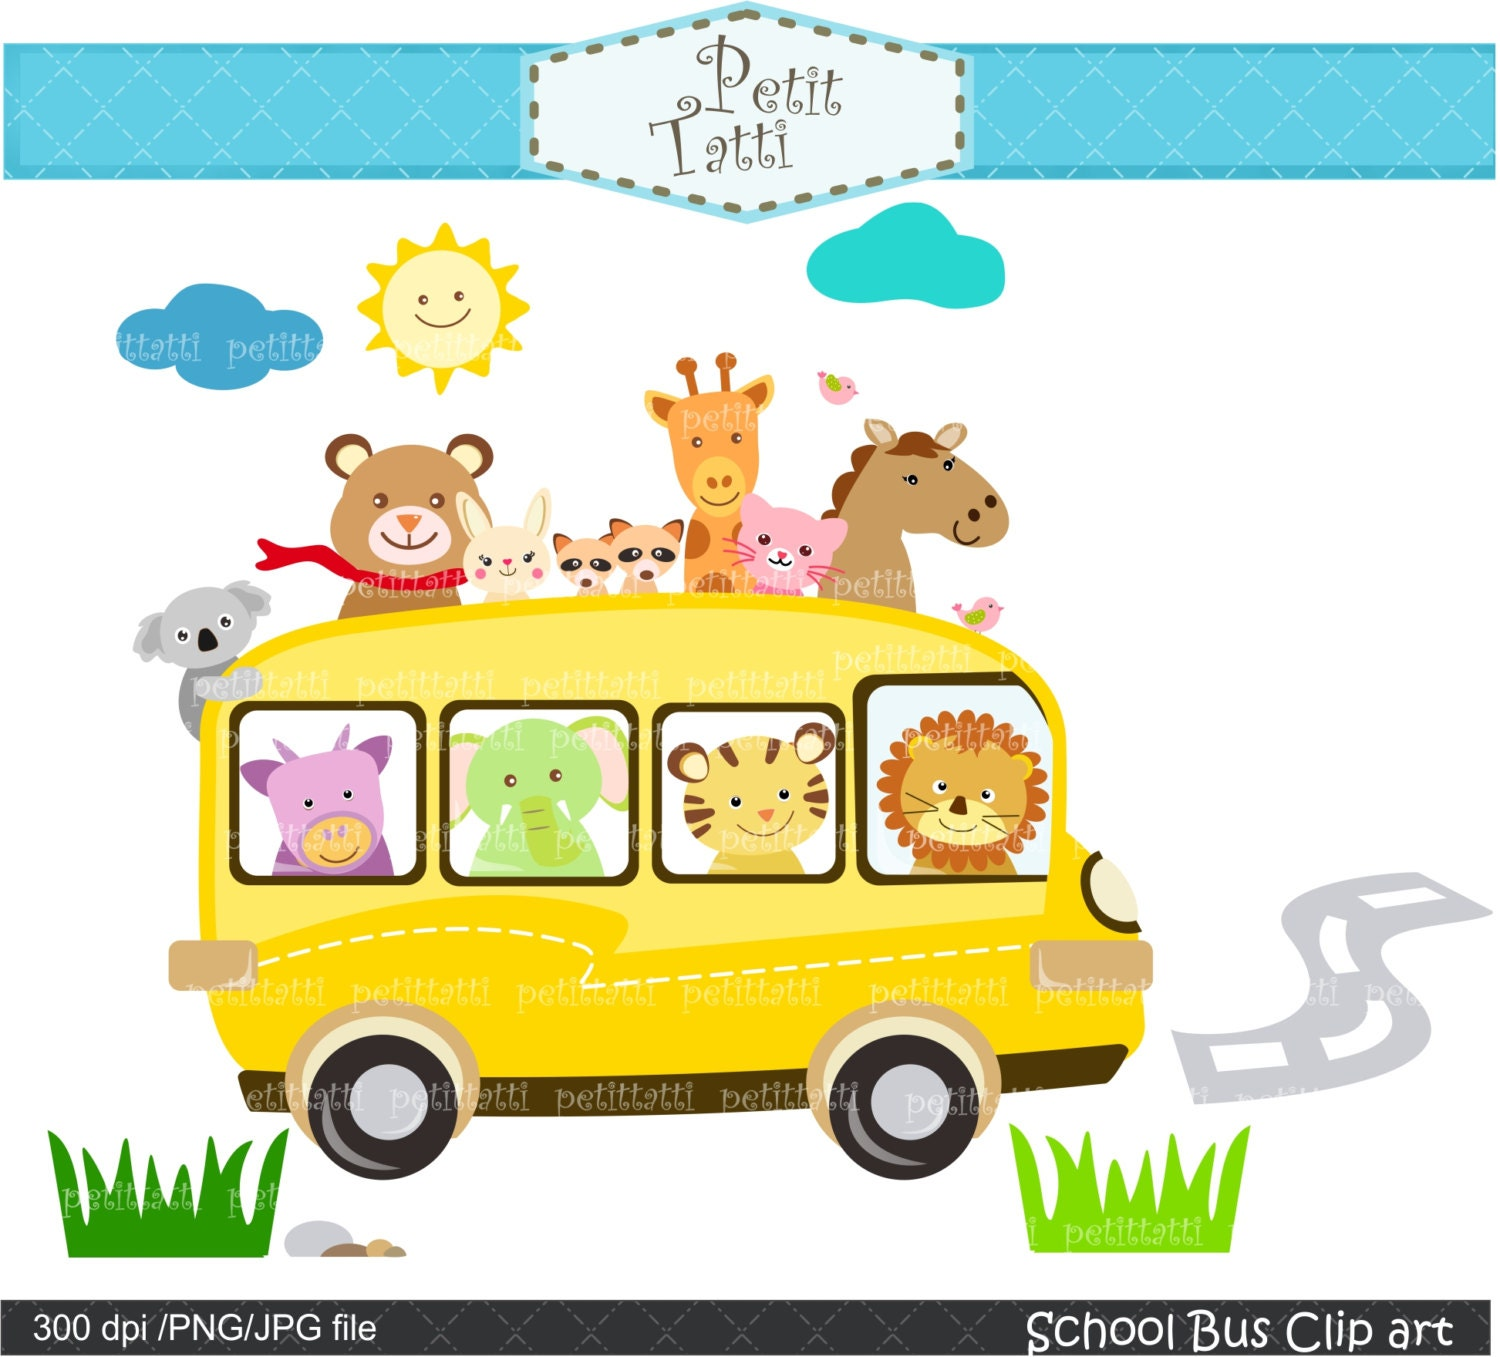 on sale school bus clipart back to school clipartinstant | etsy